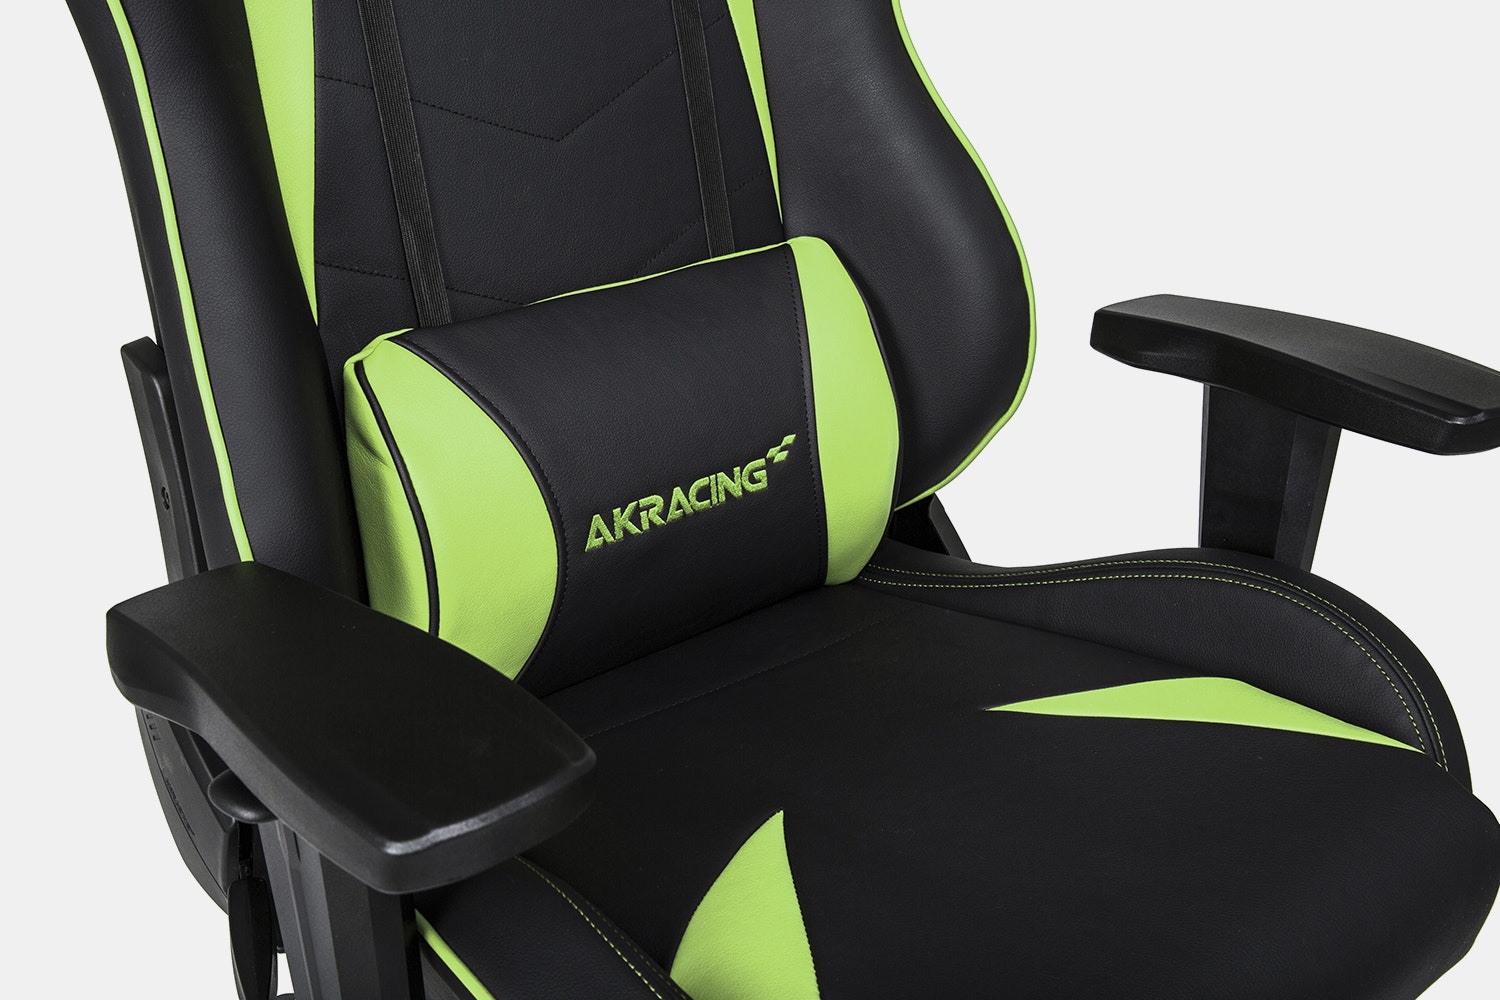 AKRacing 2018 Chairs – Massdrop Debut